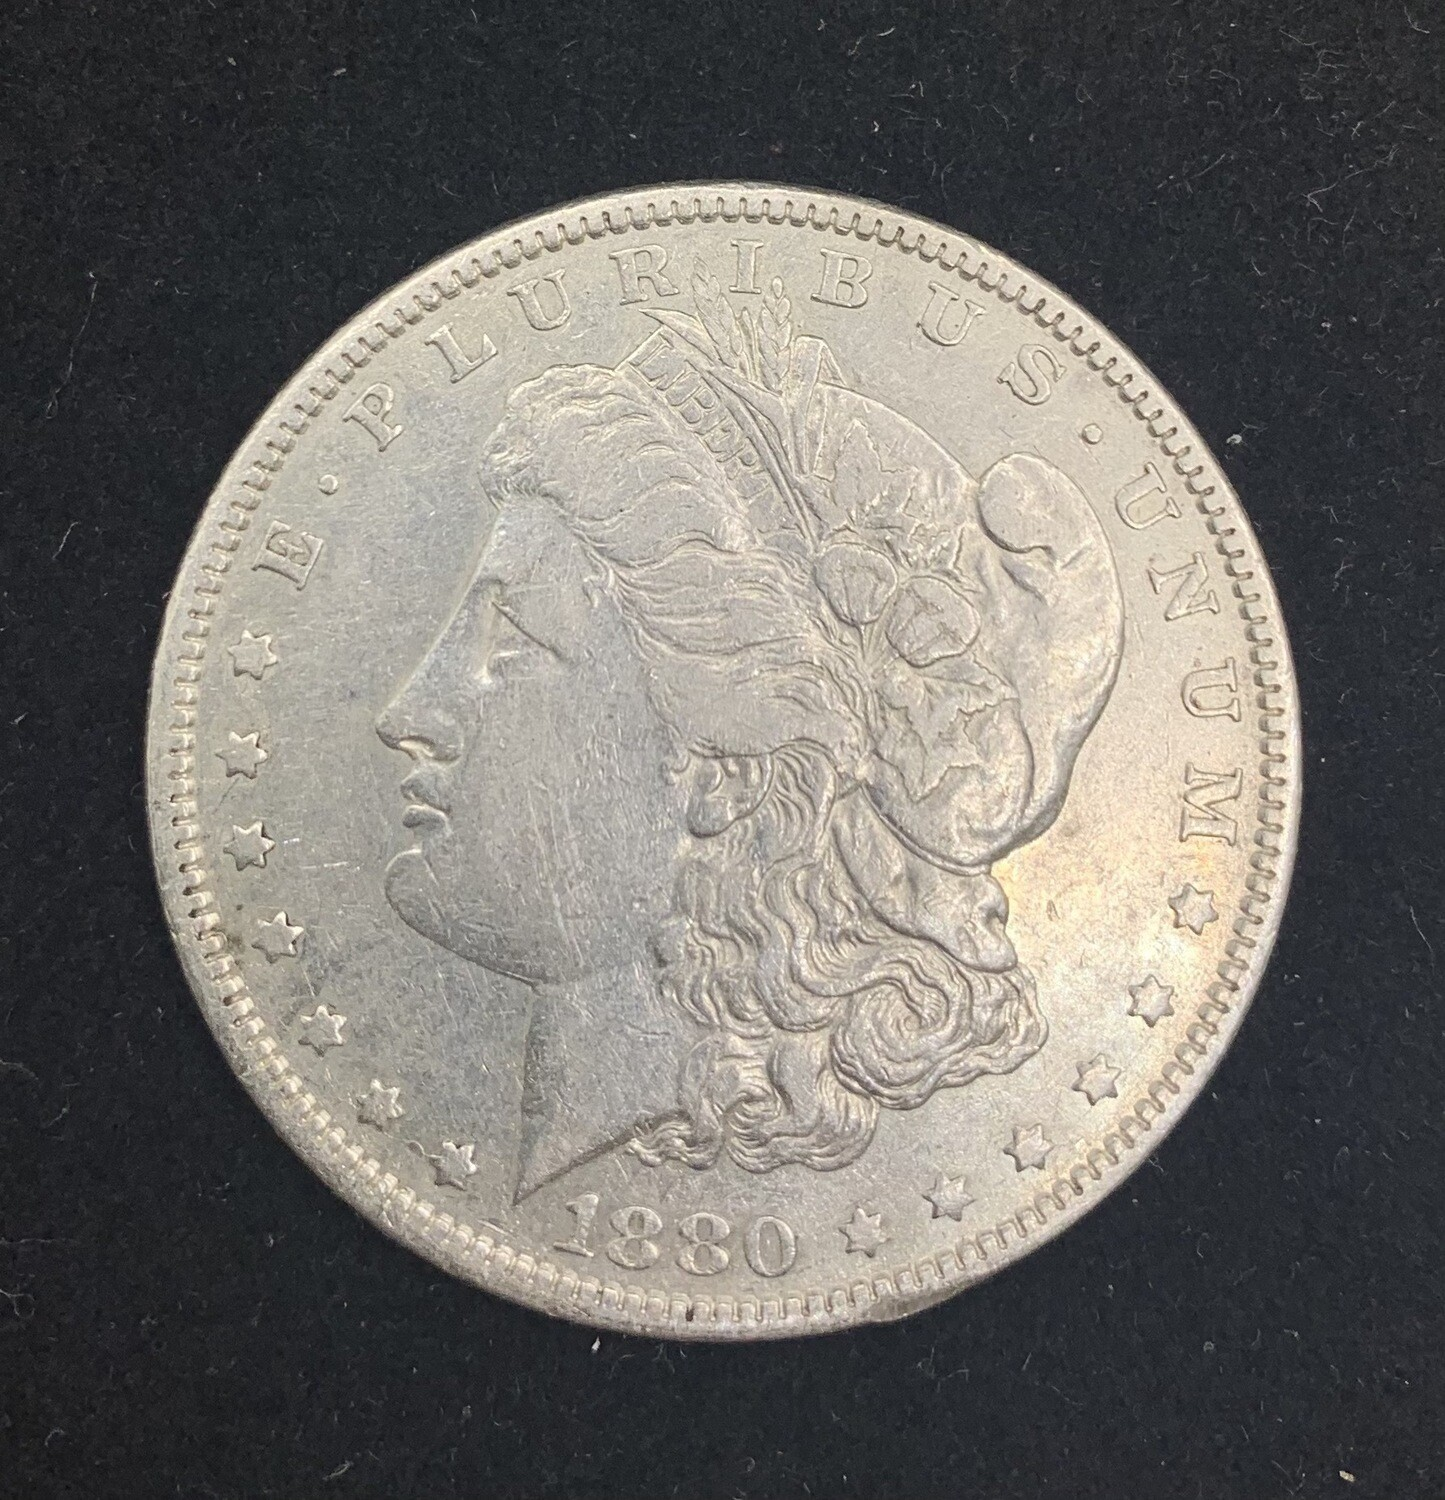 1880 Morgan Silver Dollar - Philadelphia Mint